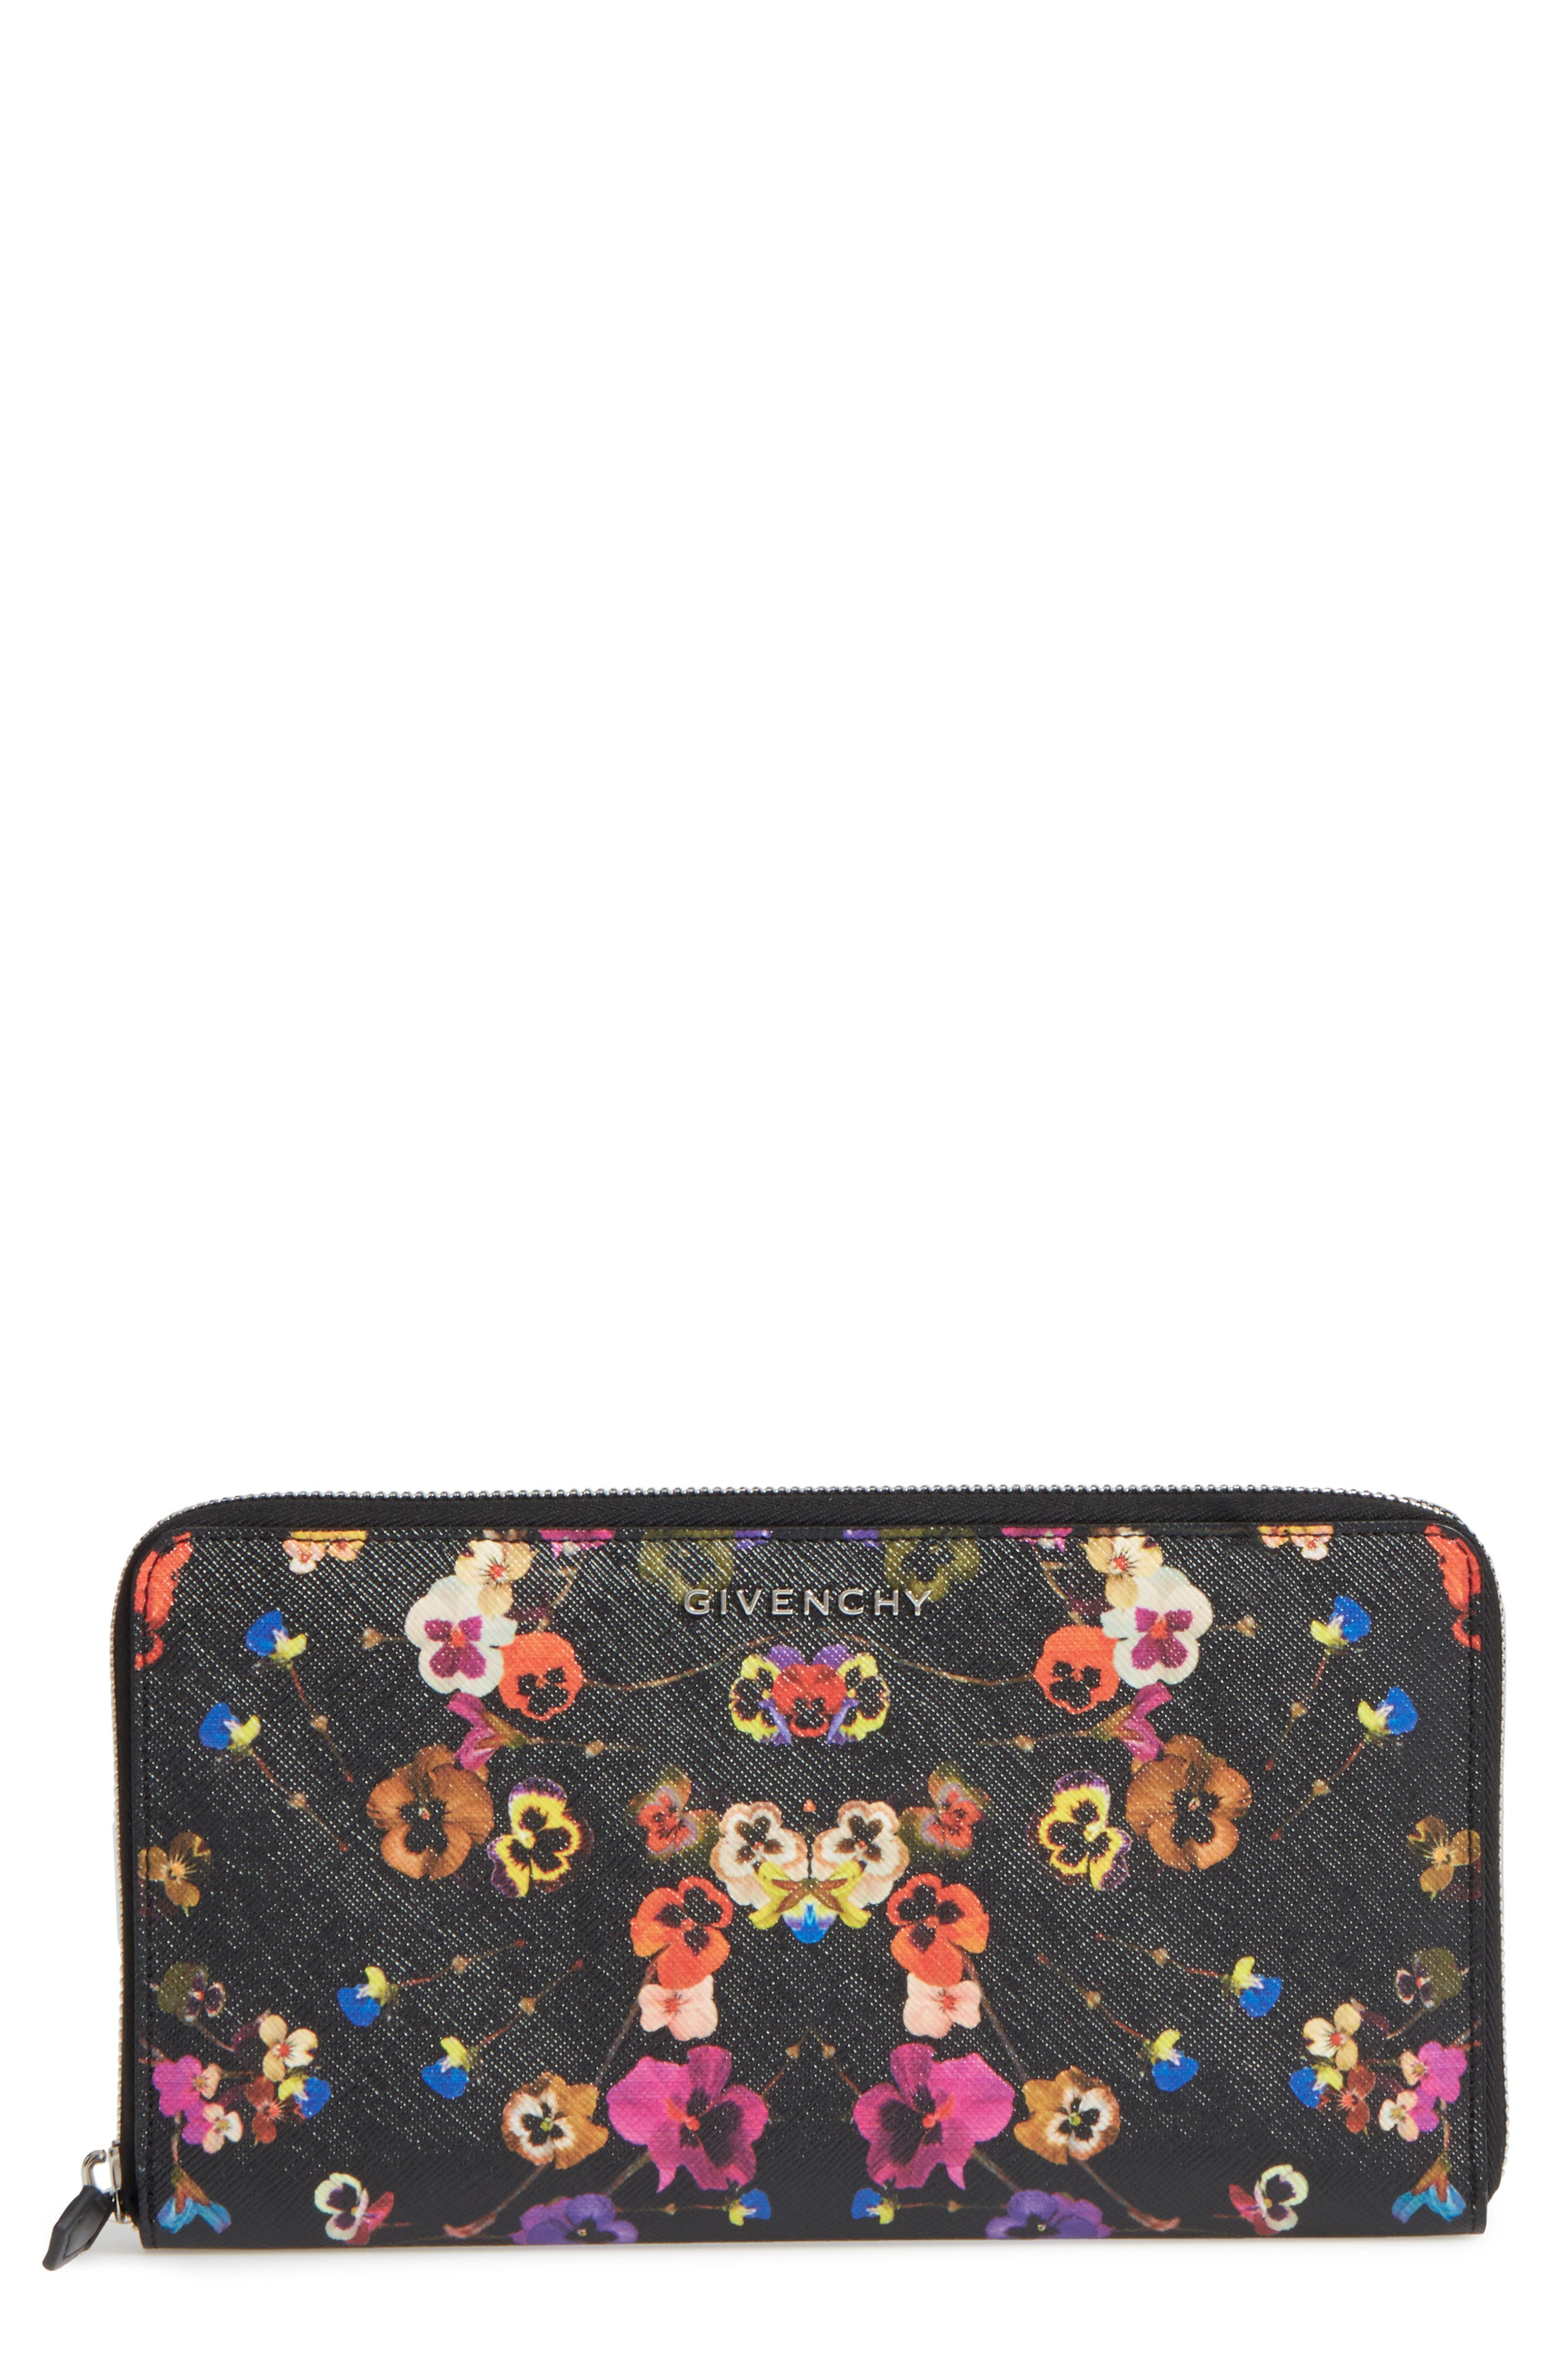 Givenchy Night Pansy Zip Around Wallet